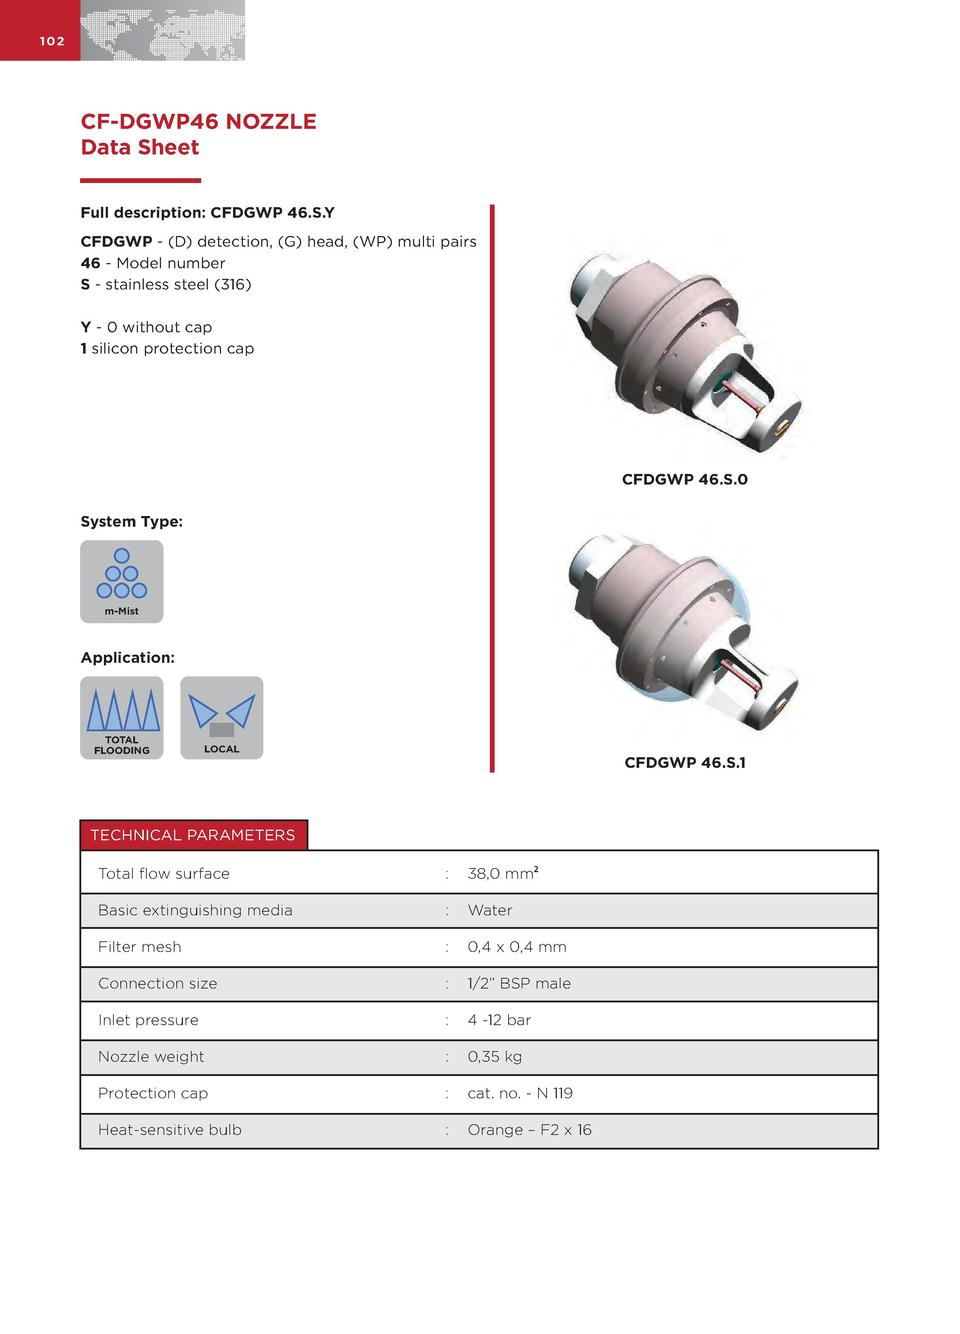 102  CF-DGWP46 NOZZLE Data Sheet Full description  CFDGWP 46.S.Y CFDGWP -  D  detection,  G  head,  WP  multi pairs 46 - M...